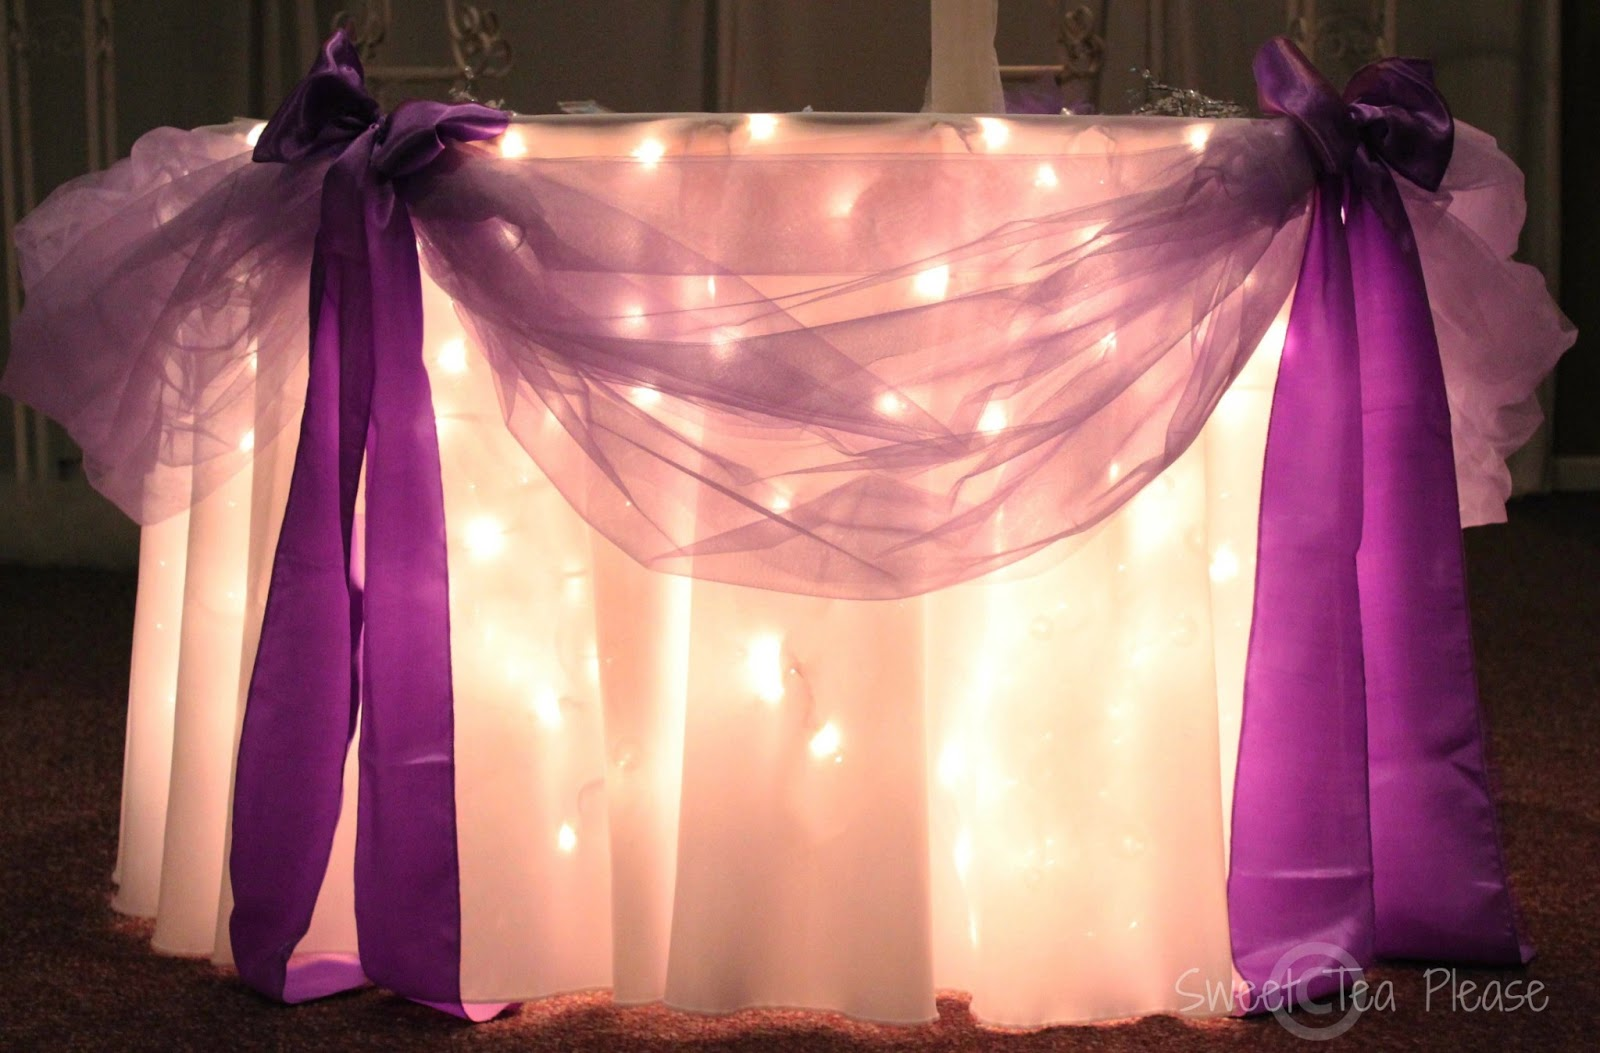 andrea howard blog decorating a cake table with lights and tulle a tutorial. Black Bedroom Furniture Sets. Home Design Ideas